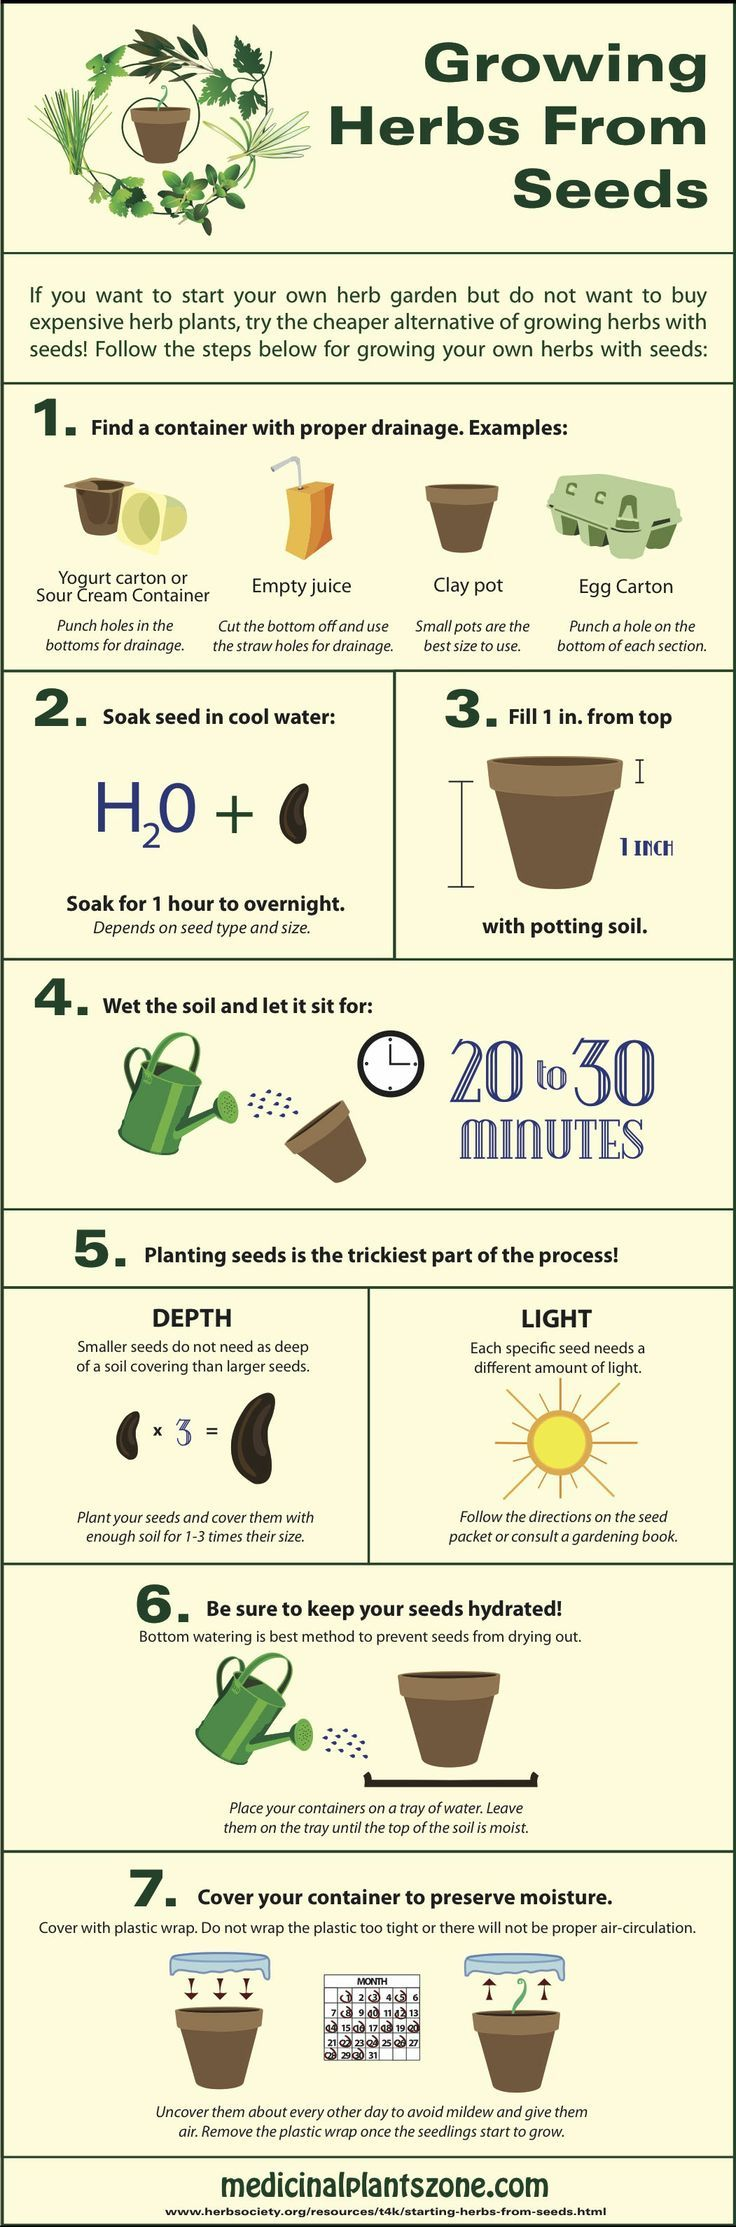 7 Steps to Growing Herbs from Seeds: http://homeandgardenamerica.com/how-to-grow-herbs-from-seeds